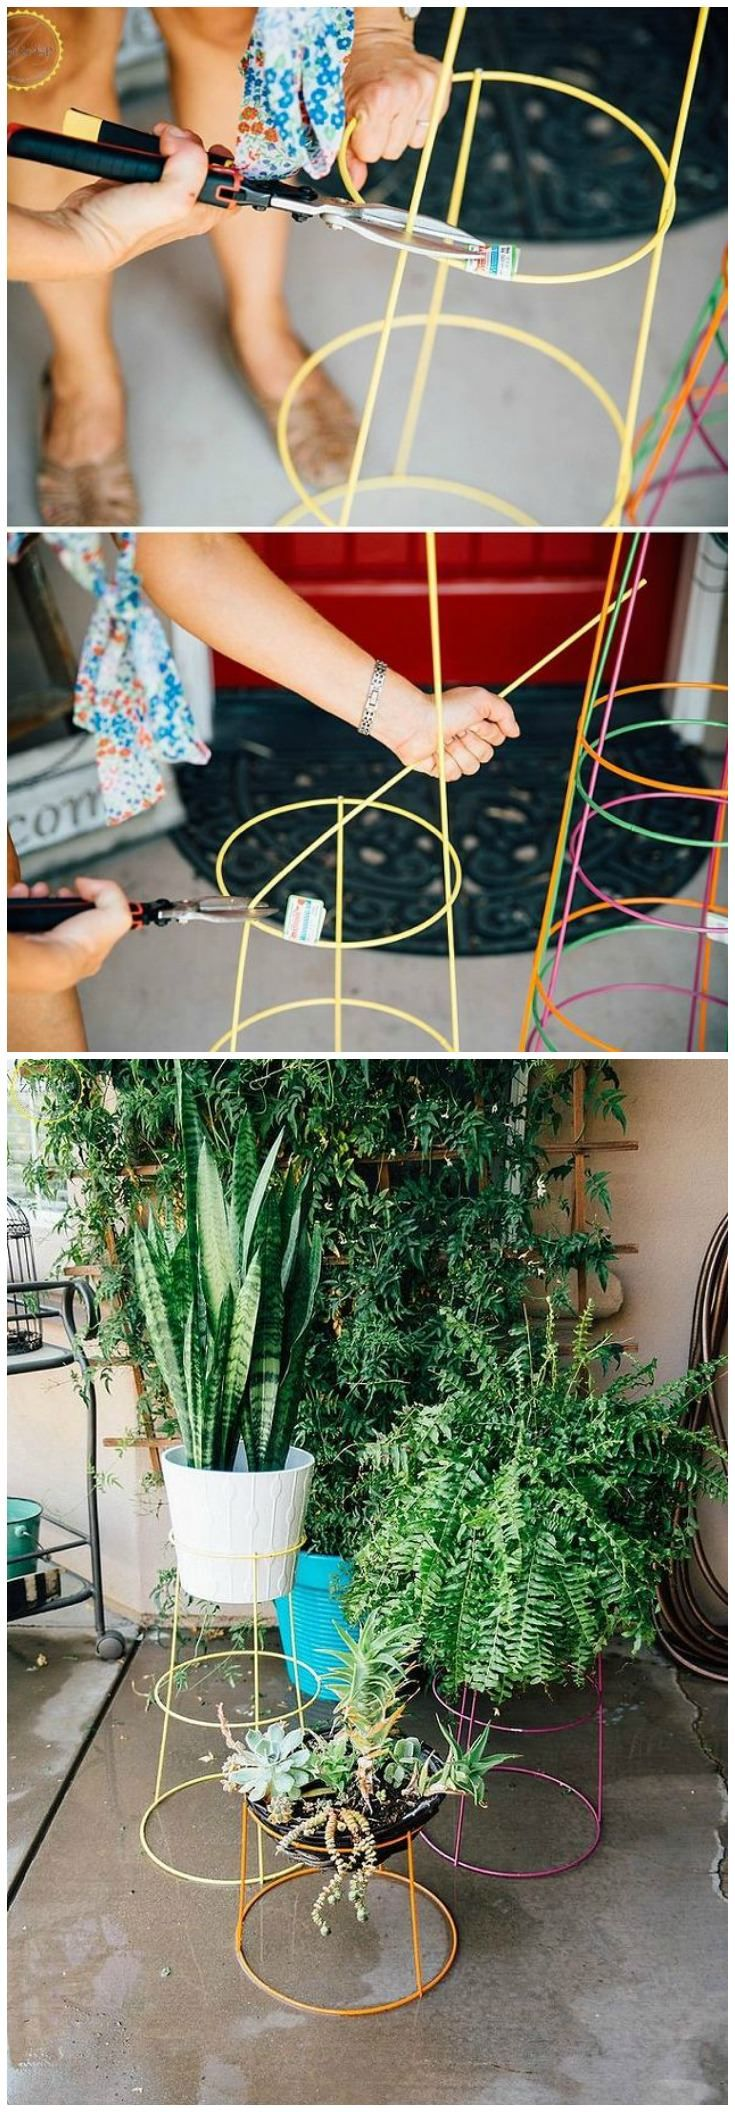 25 best ideas about indoor plant stands on pinterest plant stands indoor planters and diy. Black Bedroom Furniture Sets. Home Design Ideas